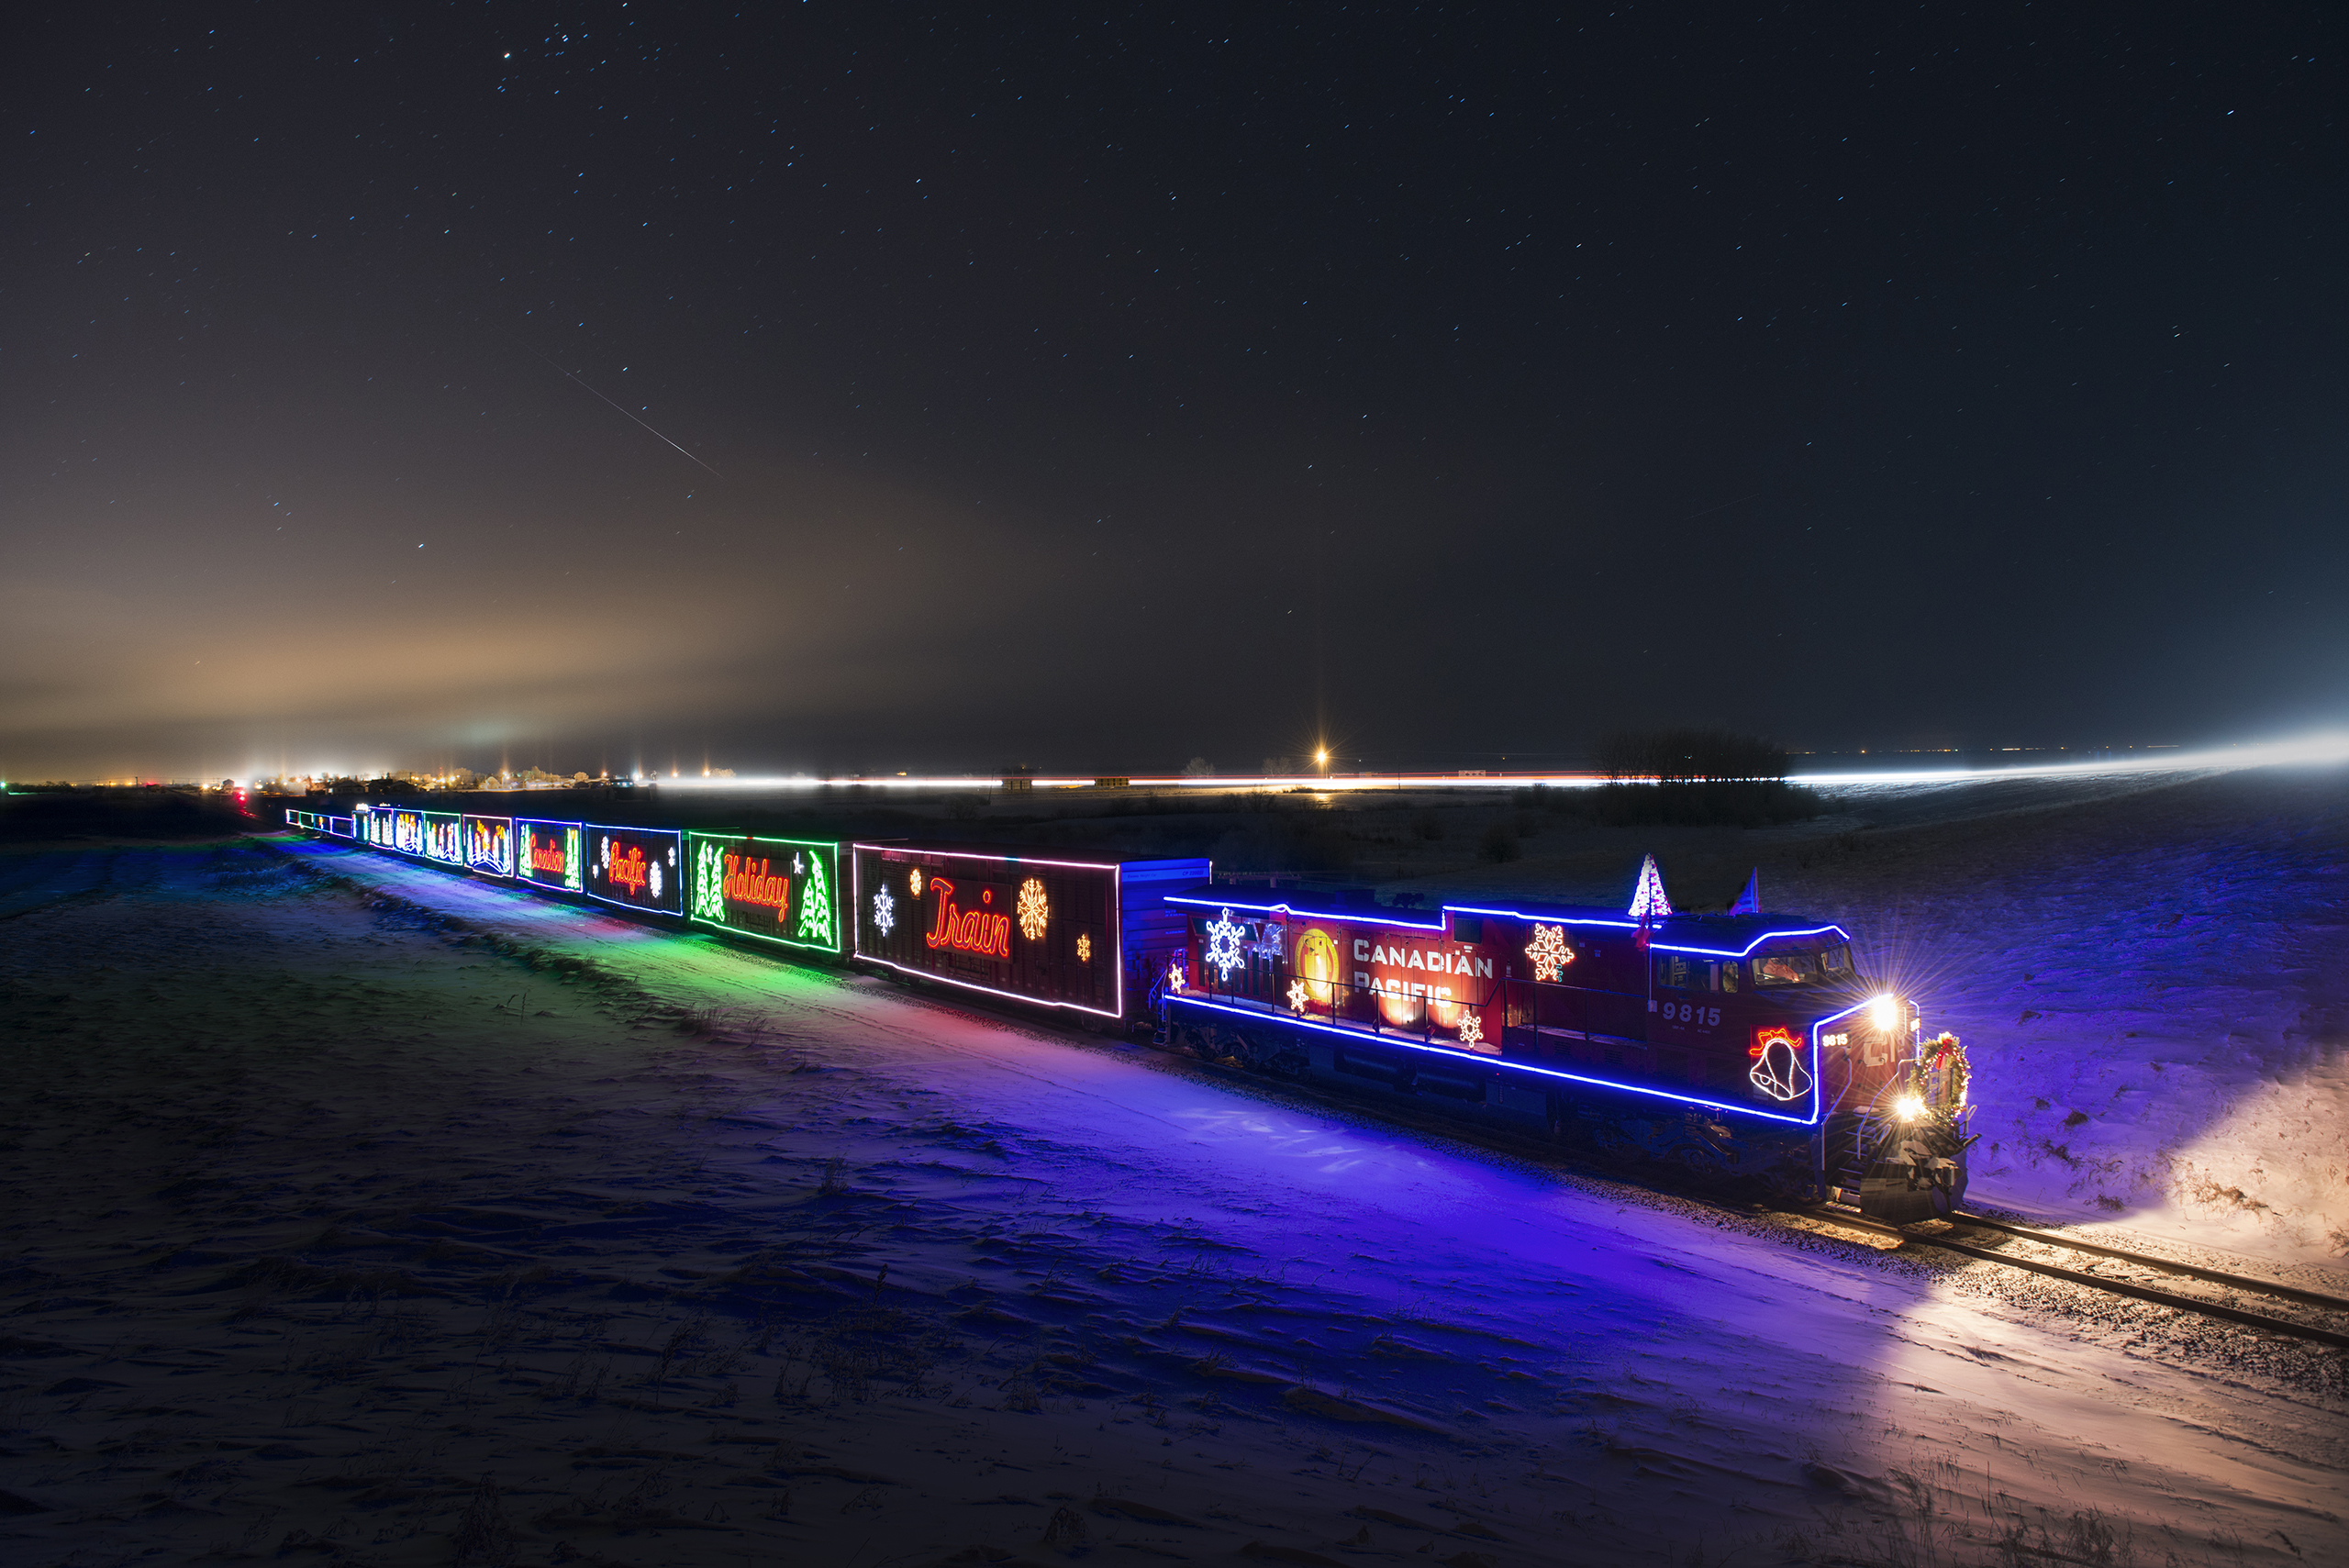 Canadian Pacific Holiday Train Schedule 2019 Photos & video